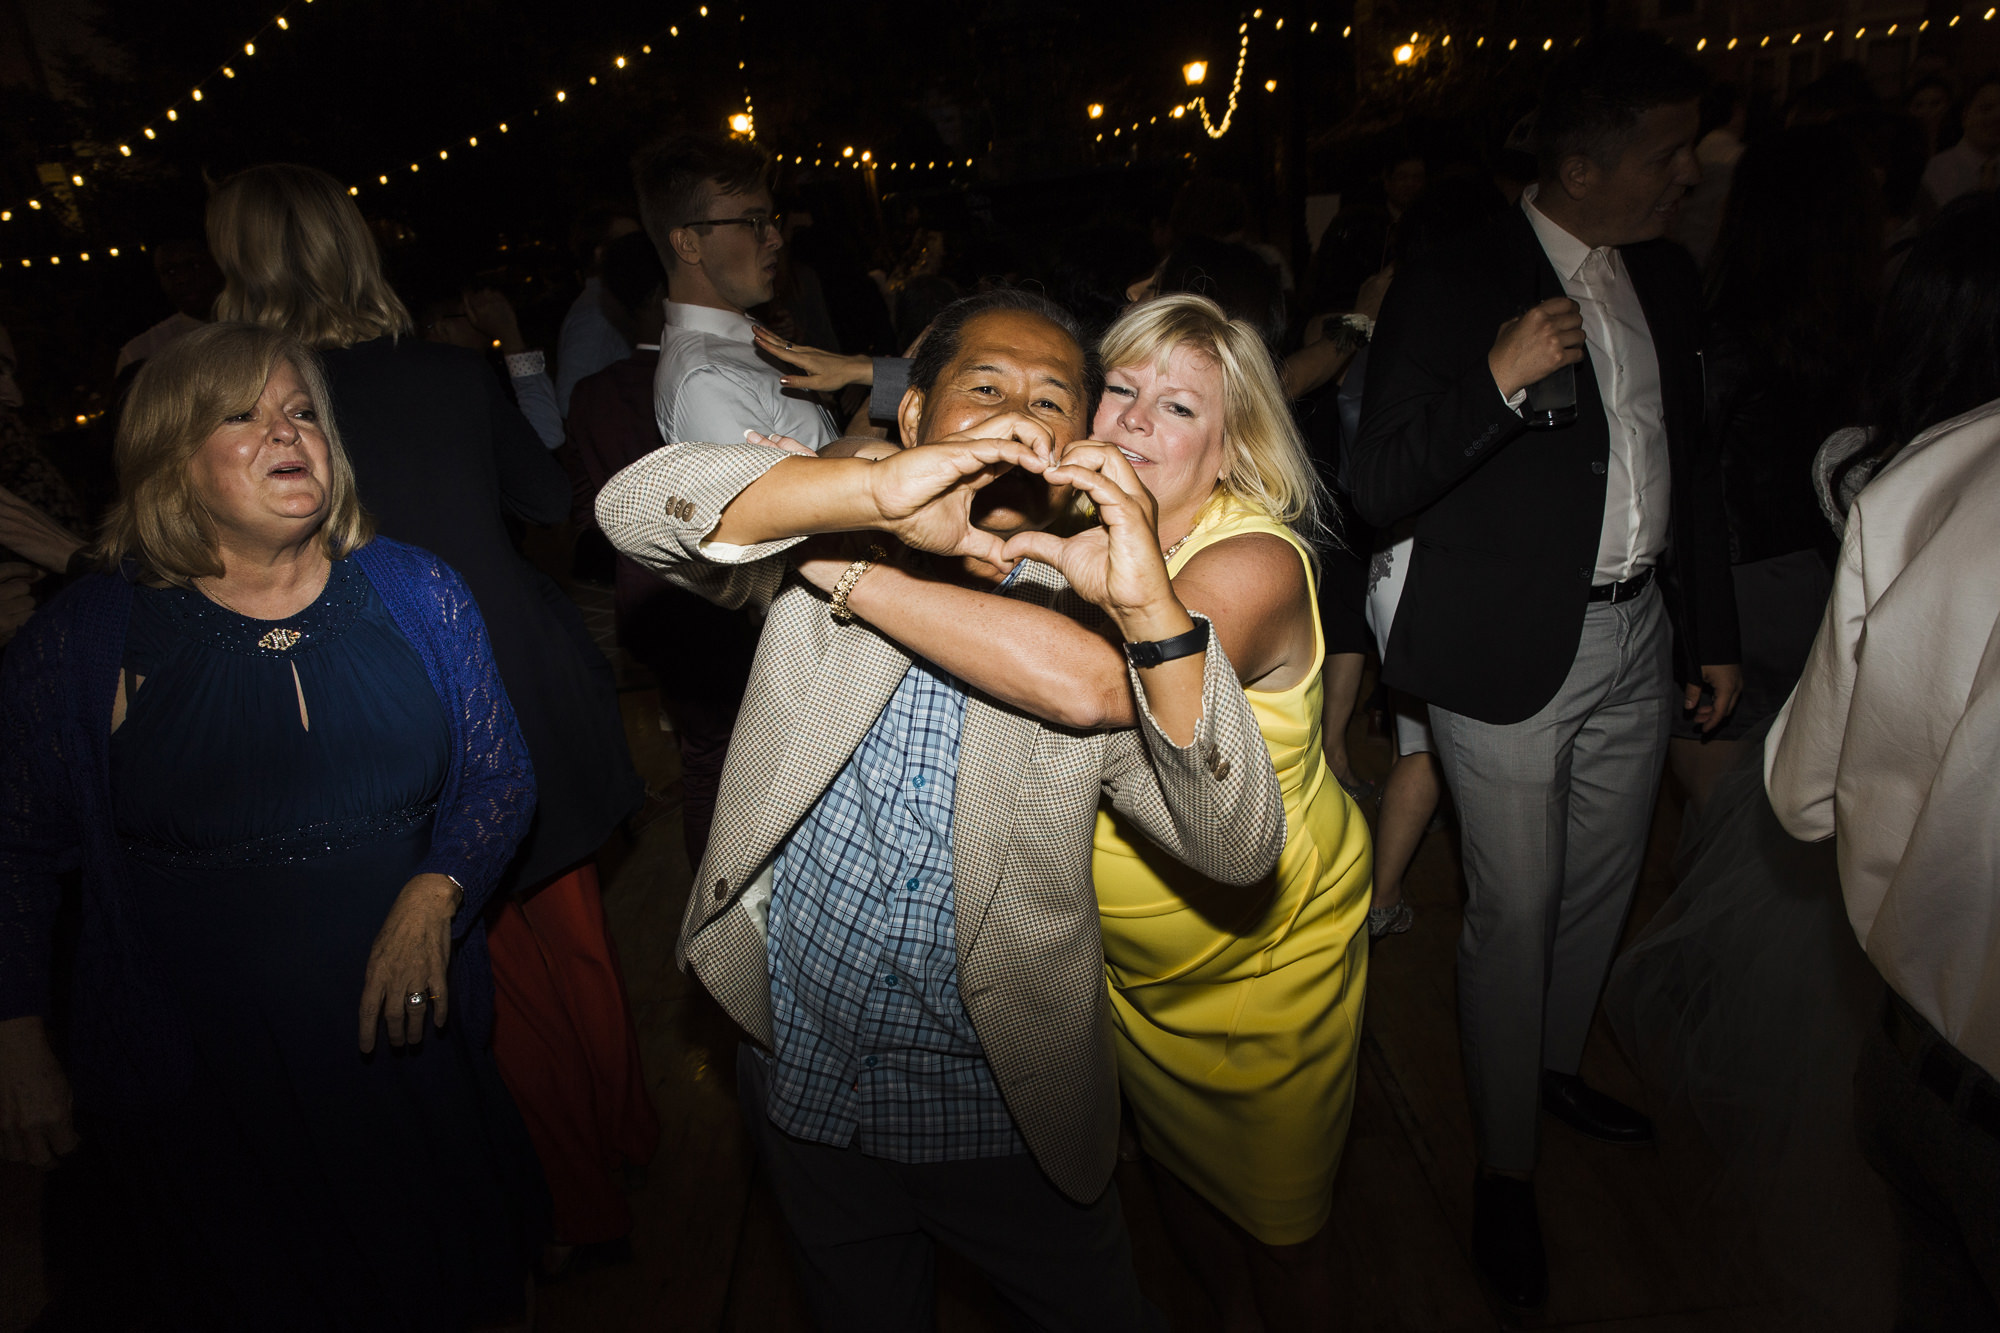 OHHWeddings_062_Oh-Honestly-Weddings-oakland-california-wedding.jpg